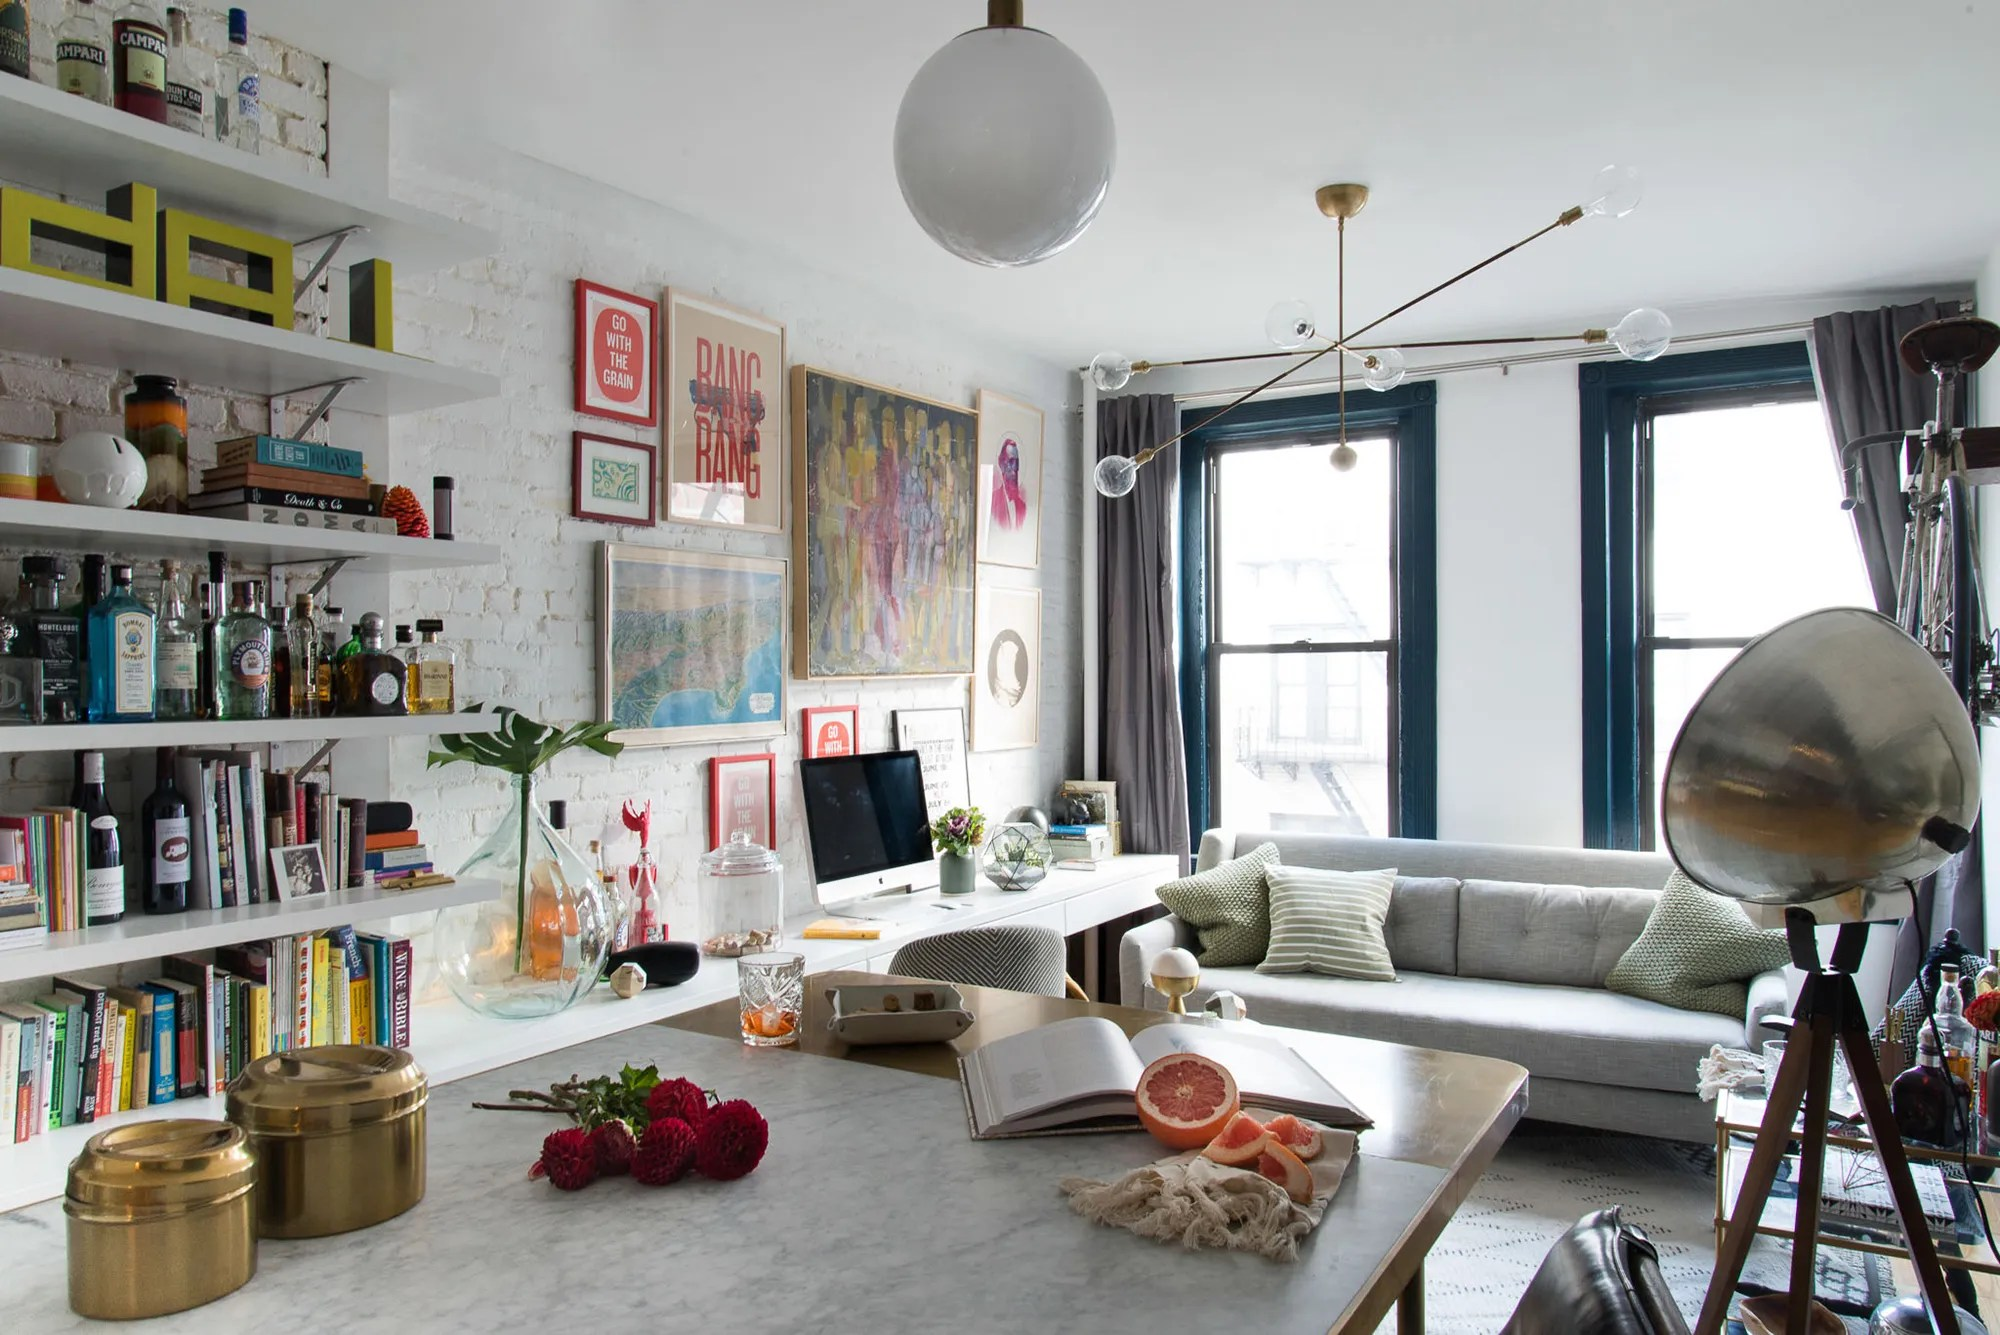 Design Rooms Online 8 Inspiring Small Rooms And Their Design Secrets Vogue